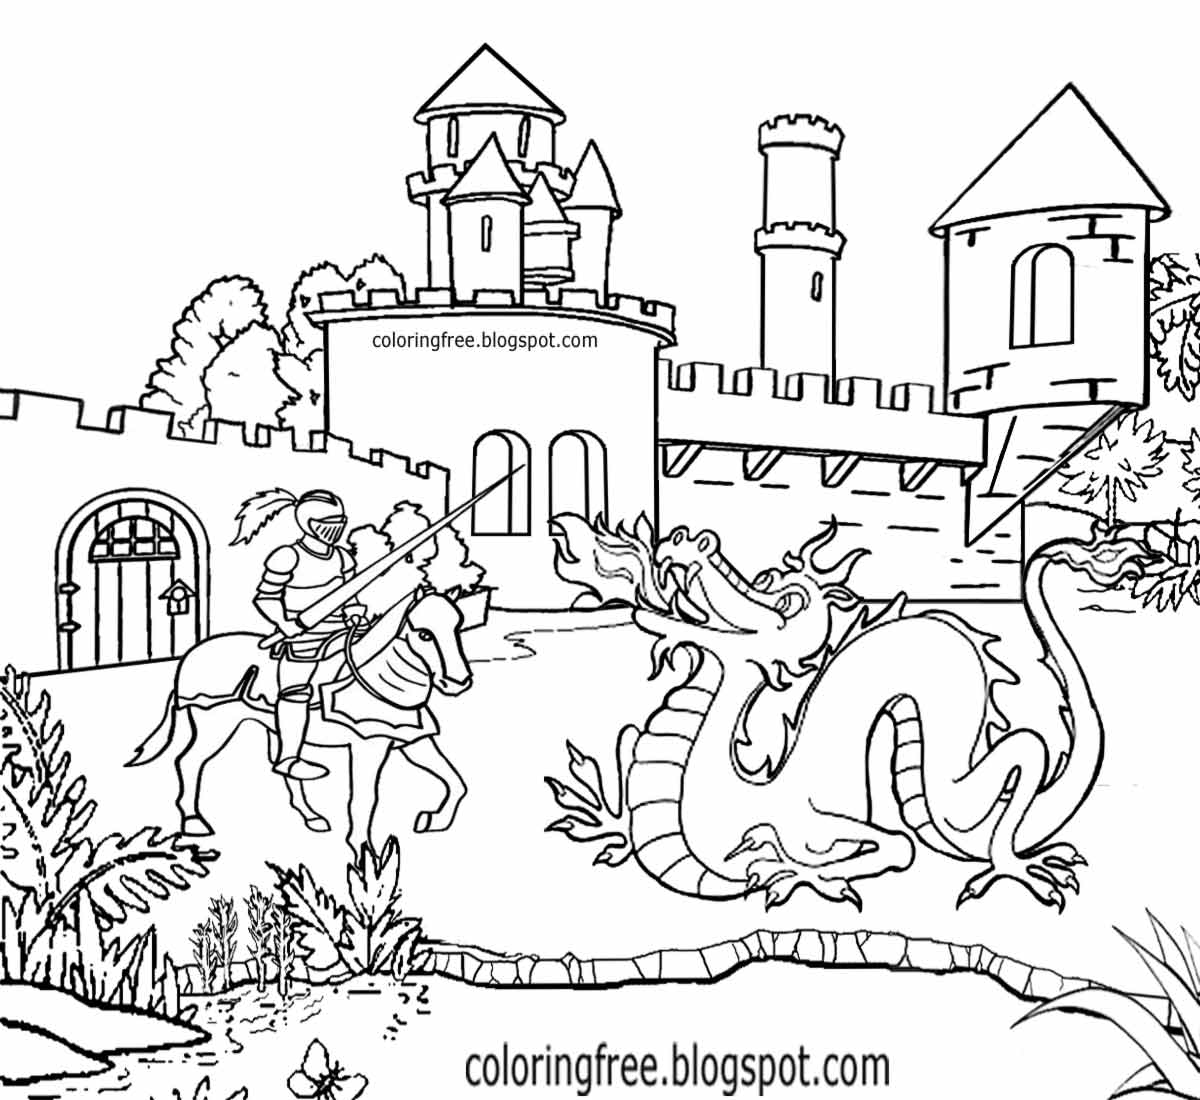 castle and knight coloring pages medieval castles drawing at getdrawings free download castle knight coloring and pages